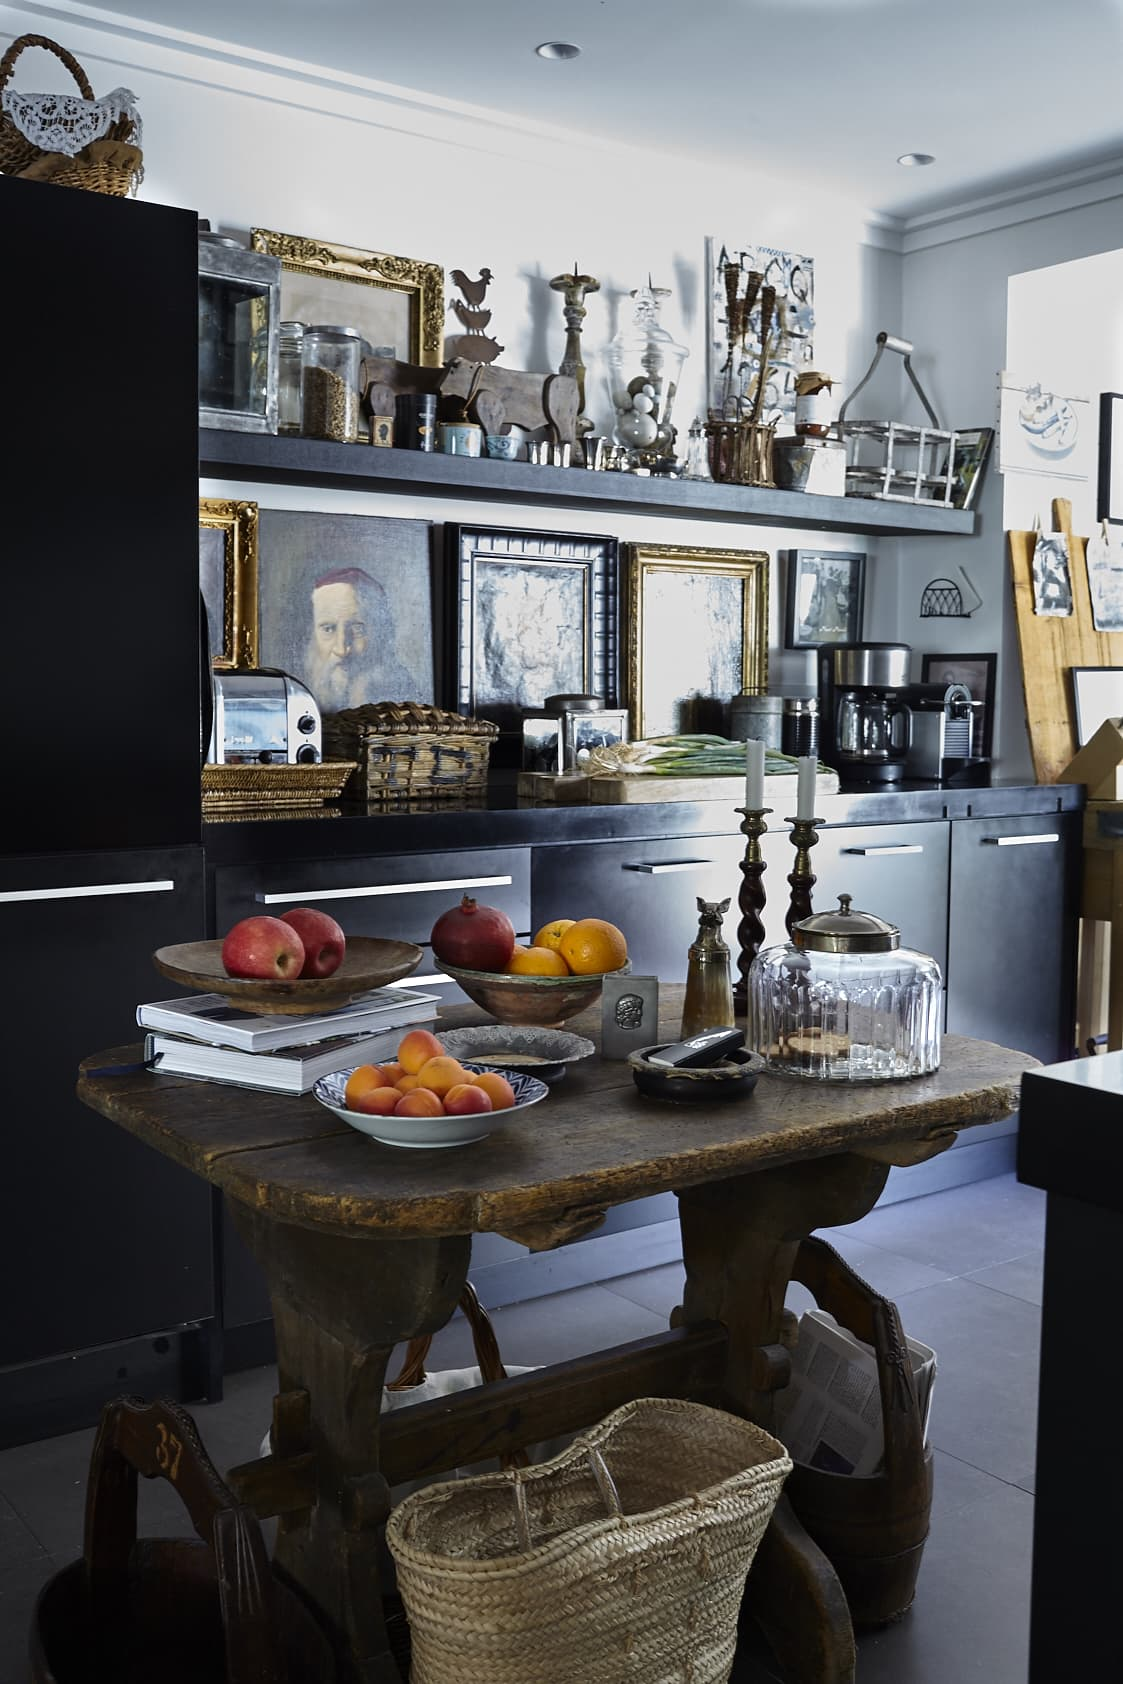 In Anna's kitchen there are no rules, the art is mixed with the tools and everything must claim its own space. Black, grey, brown, white and gold are the dominating shades while the fruits of Mallorca are adding a splash of colorfulness. A characteristic Majorcan straw bag can be seen on the floor.